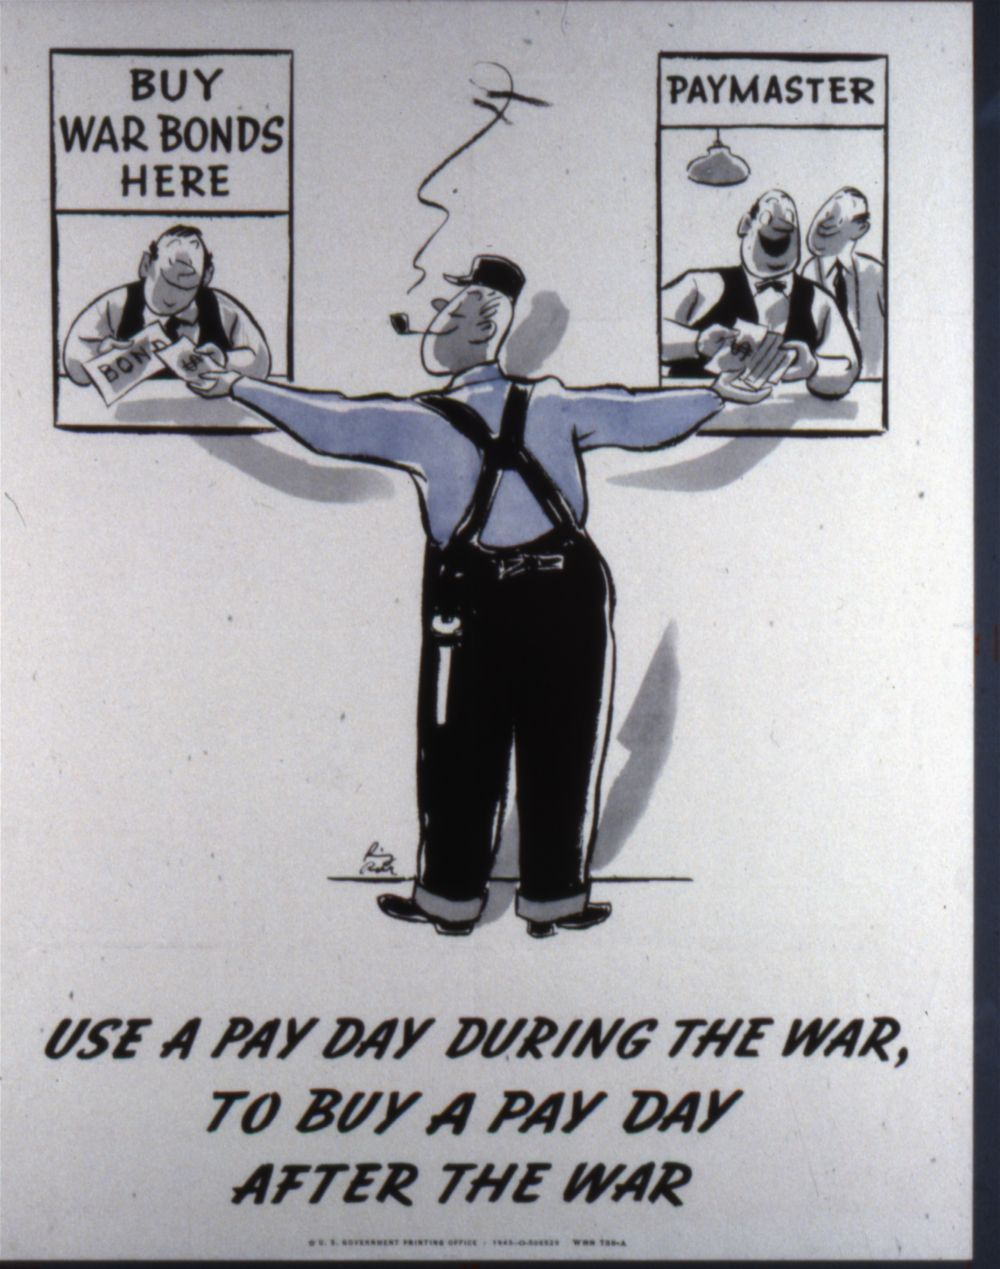 Use a Pay Day During the War, to Buy a Pay Day After the War